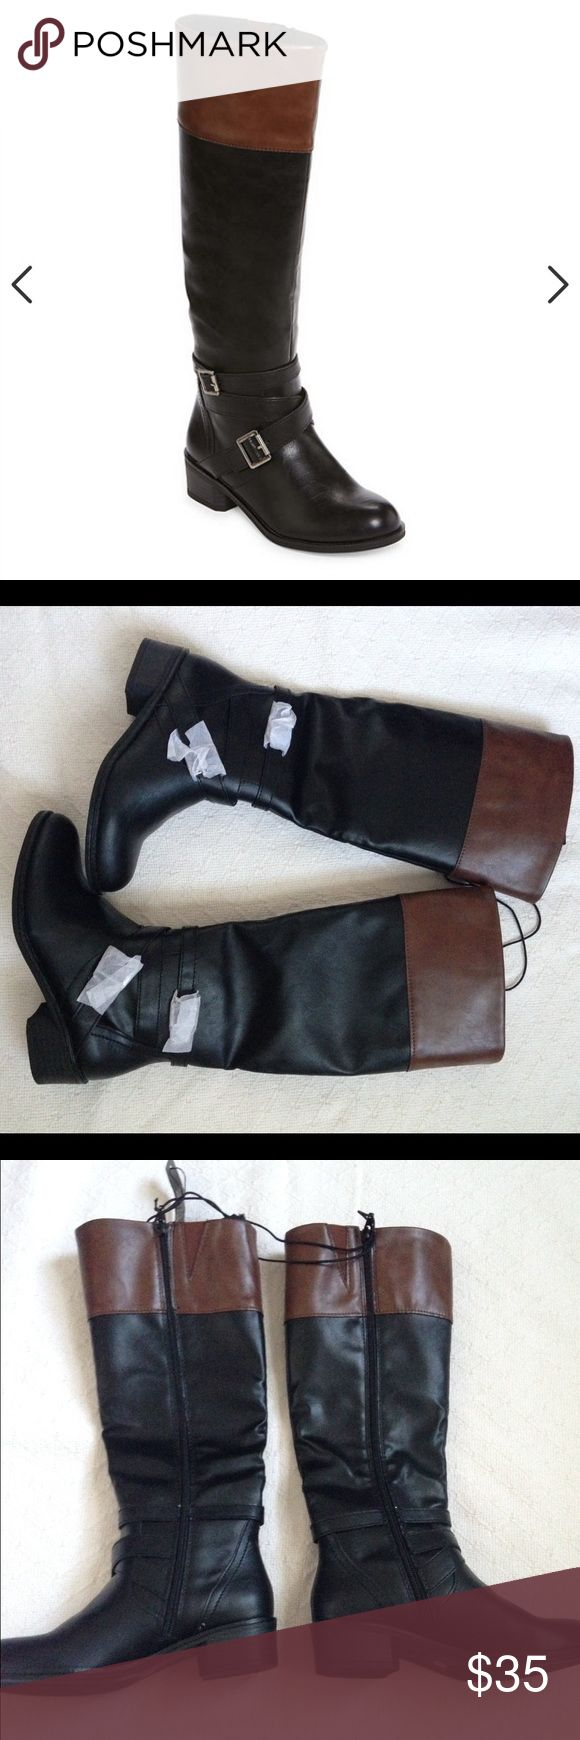 Arizona Dakota Two Tone Riding Boots Size 6 two tone riding boots. These are brand new, never worn! They still have tissue on the buckles! Great for fall 🍁🍂 No box. Arizona Jean Company Shoes